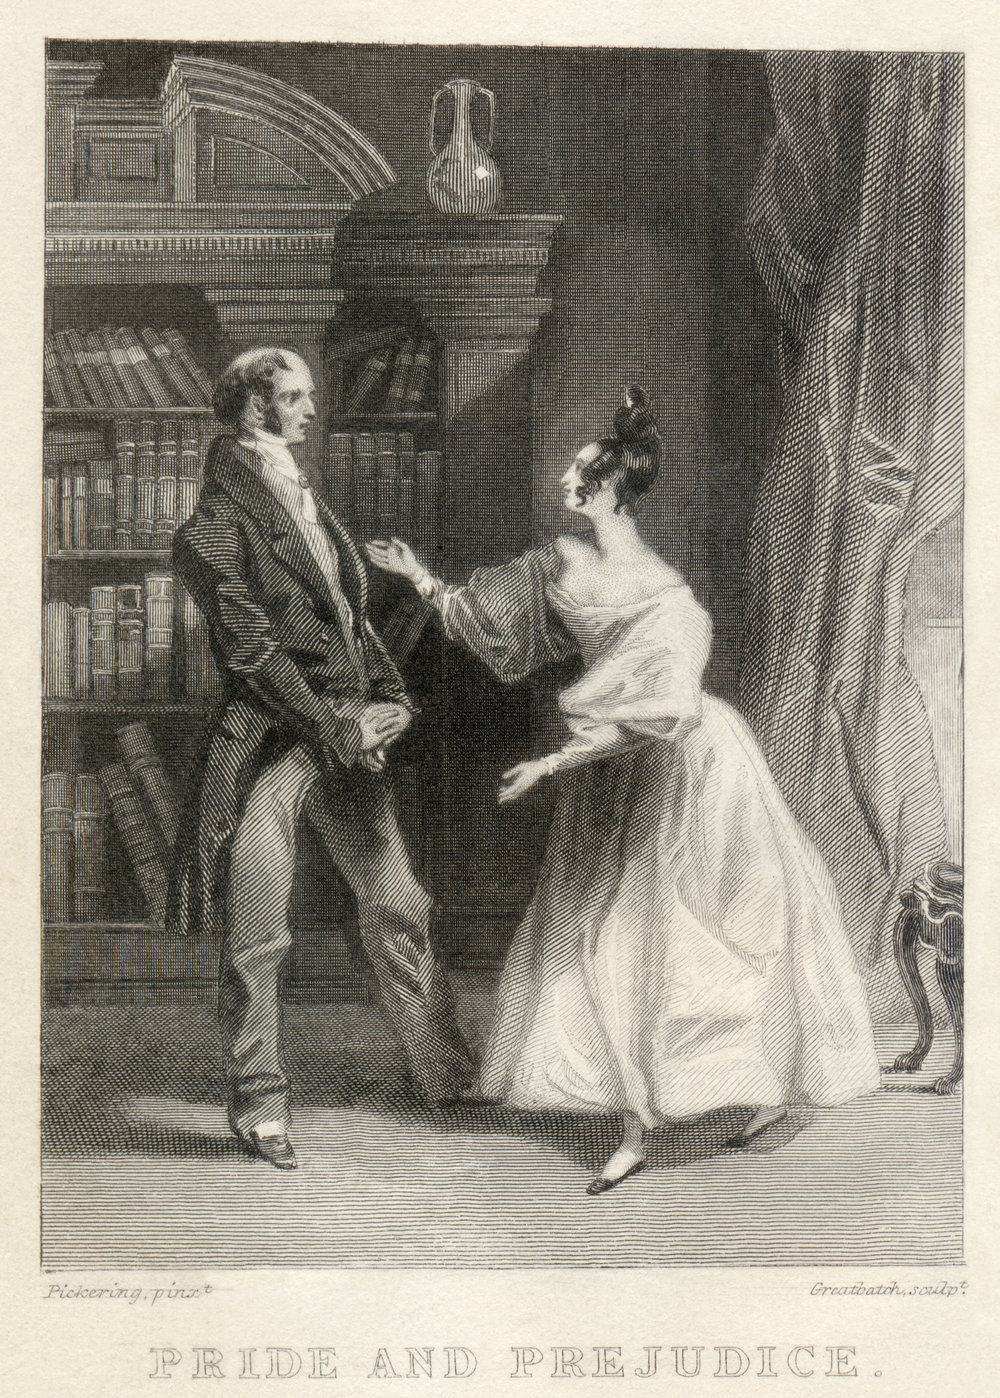 Pickering_-_Greatbatch_-_Jane_Austen_-_Pride_and_Prejudice_-_She_then_told_him_what_Mr._Darcy_had_voluntarily_done_for_Lydia.jpg